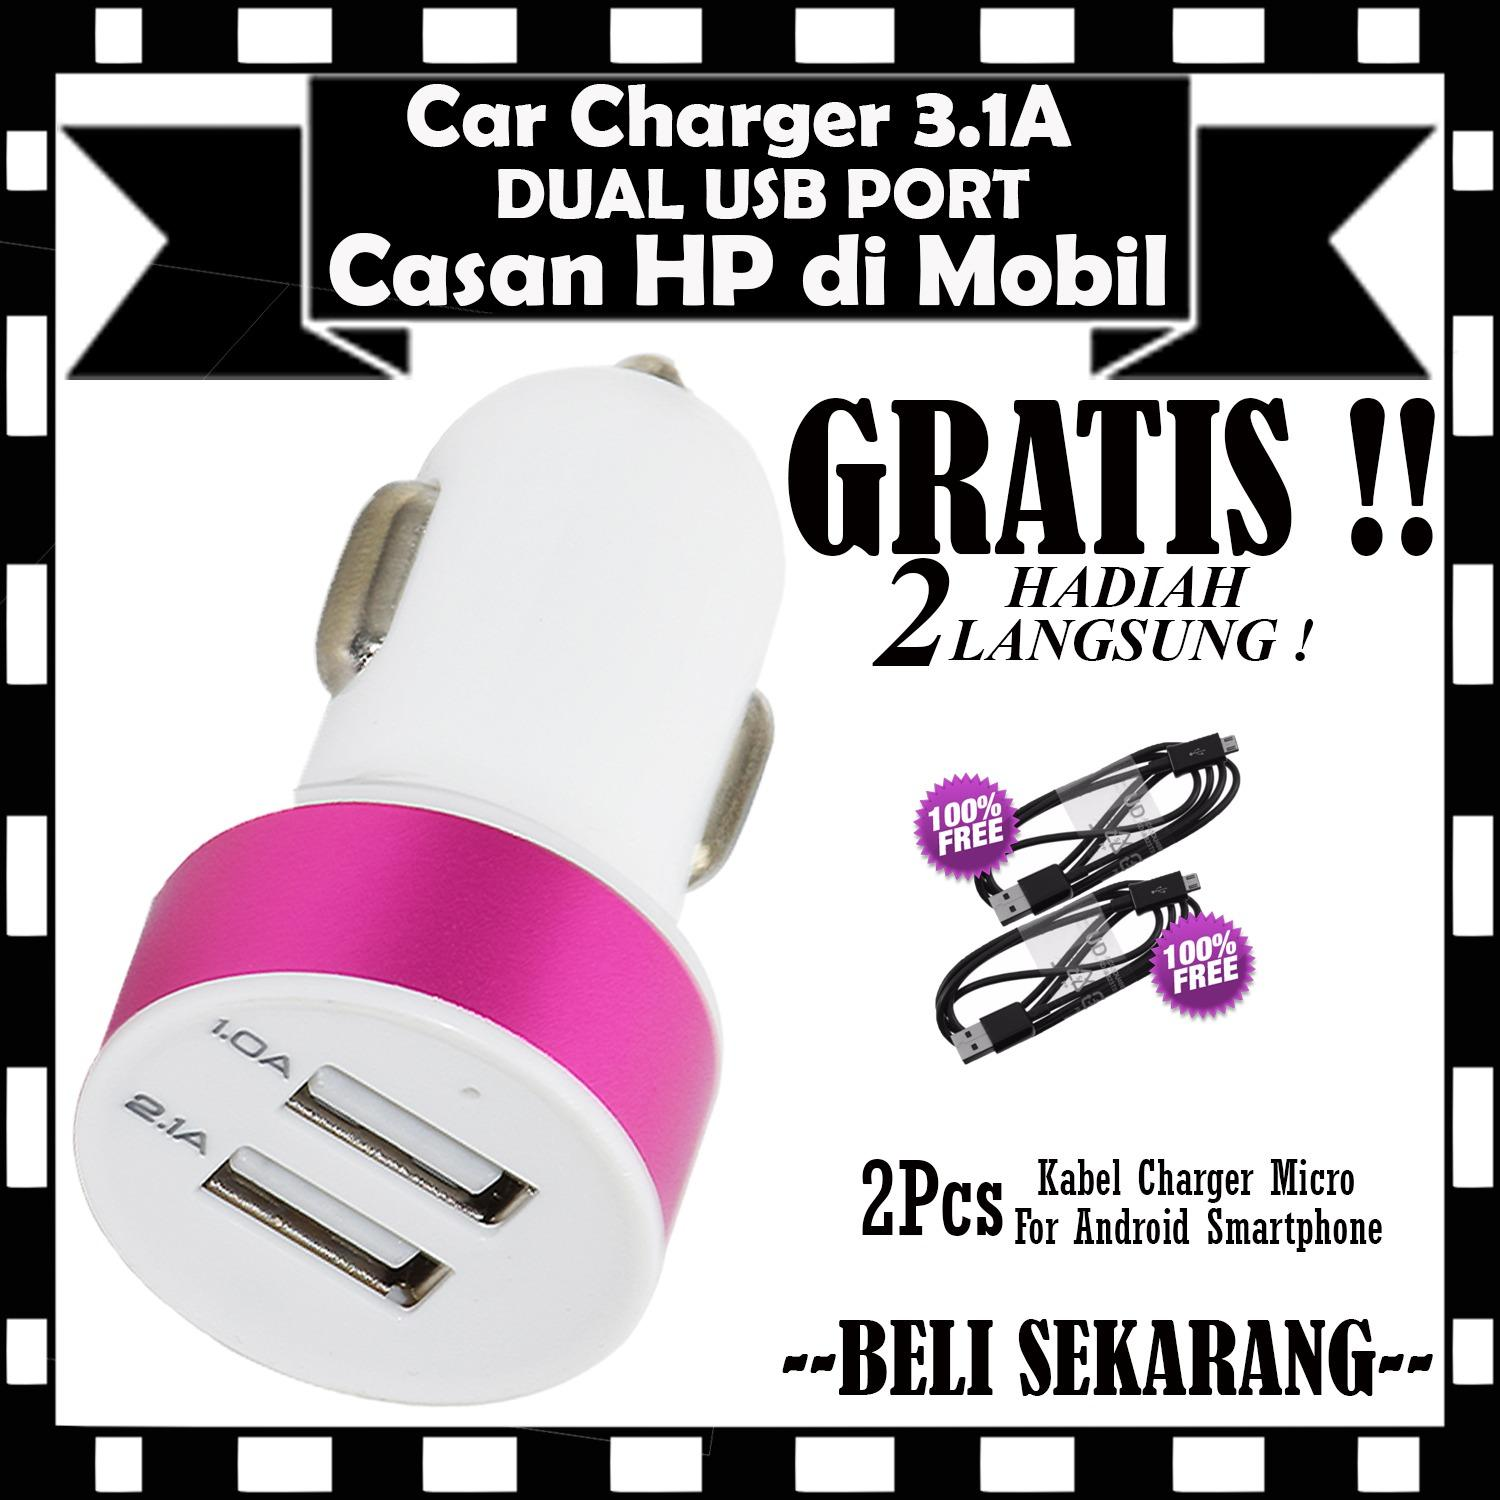 Car Charger Dual USB 3.1 Ampere 2 USB Port Casan HP di Mobil - GRATIS 2Pcs Kabel Charger Casan Android